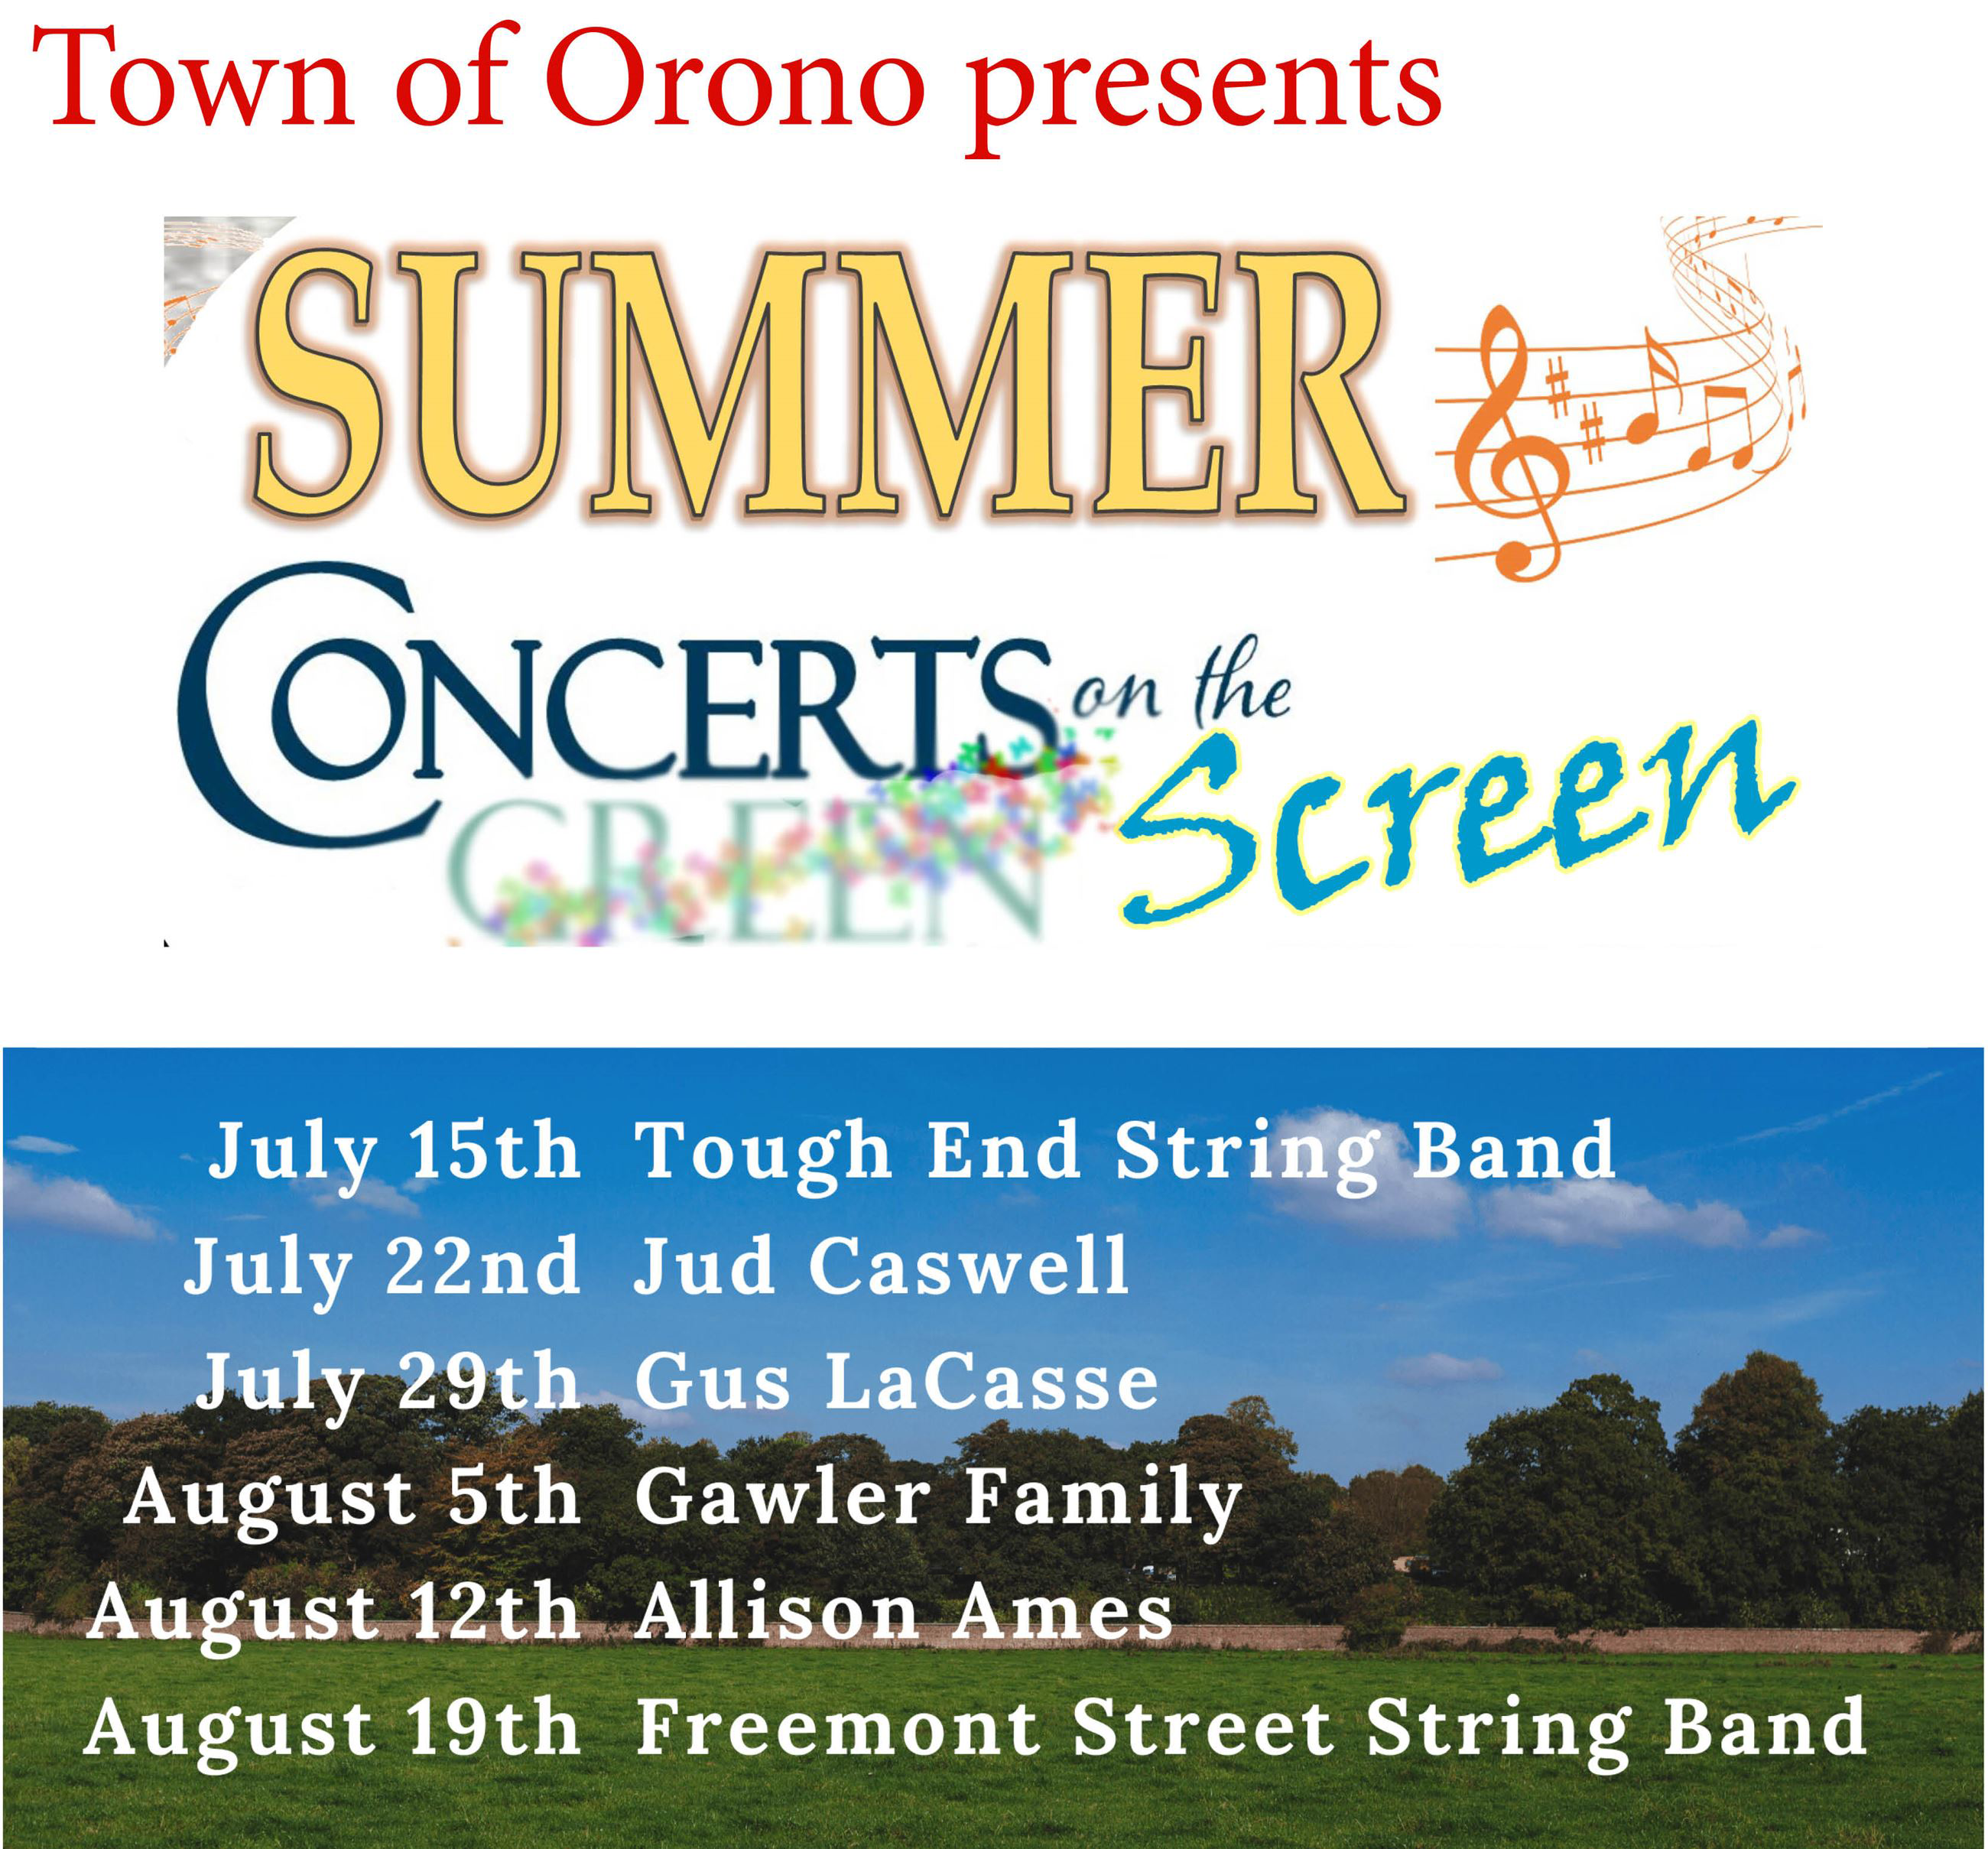 Summer Concert Series schedule - see link for text version